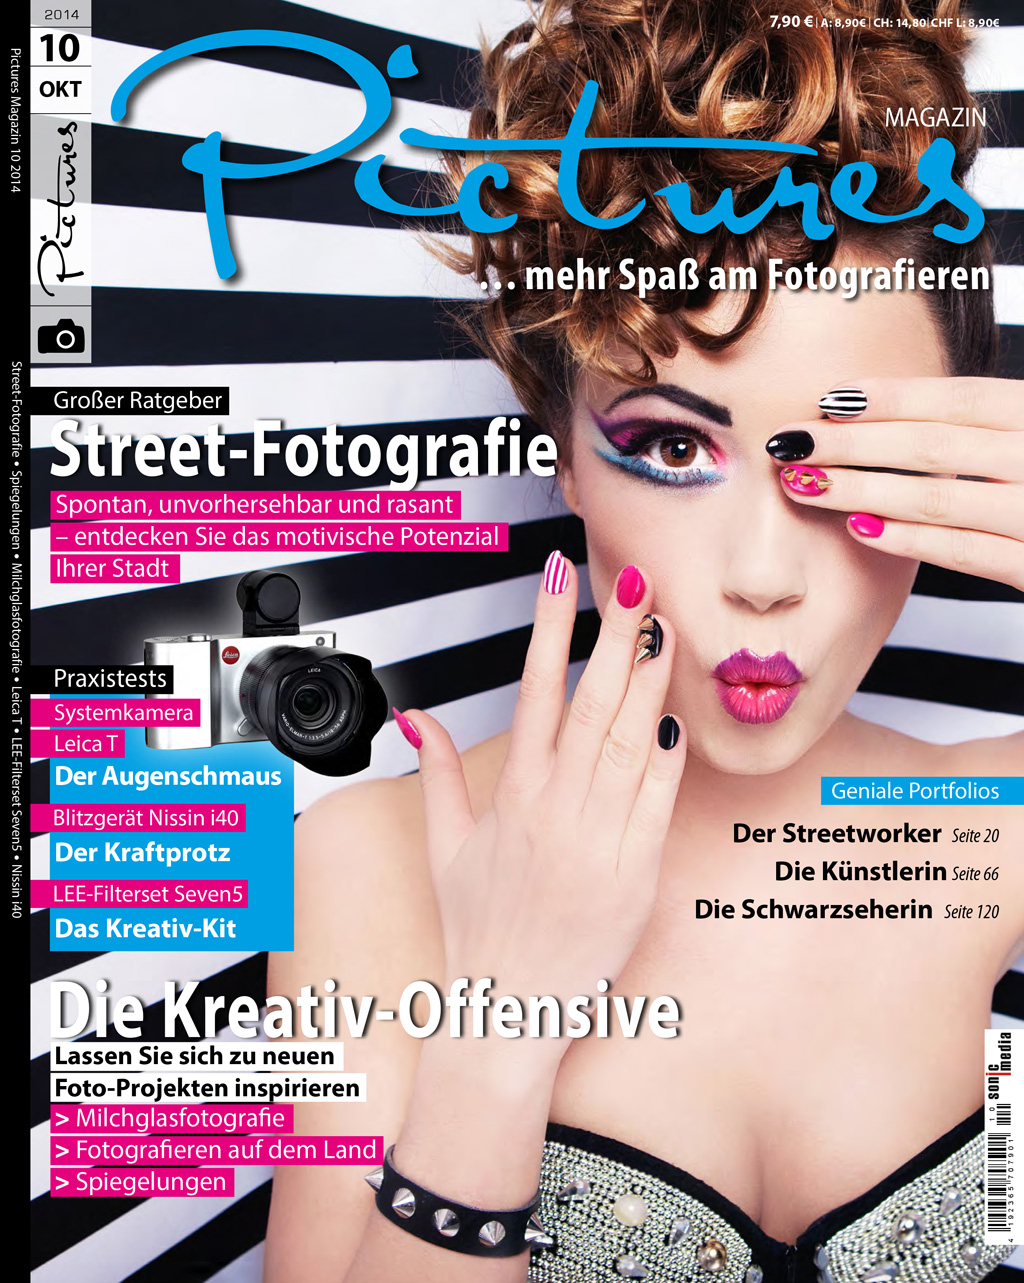 Pictures Magazin 10/2014